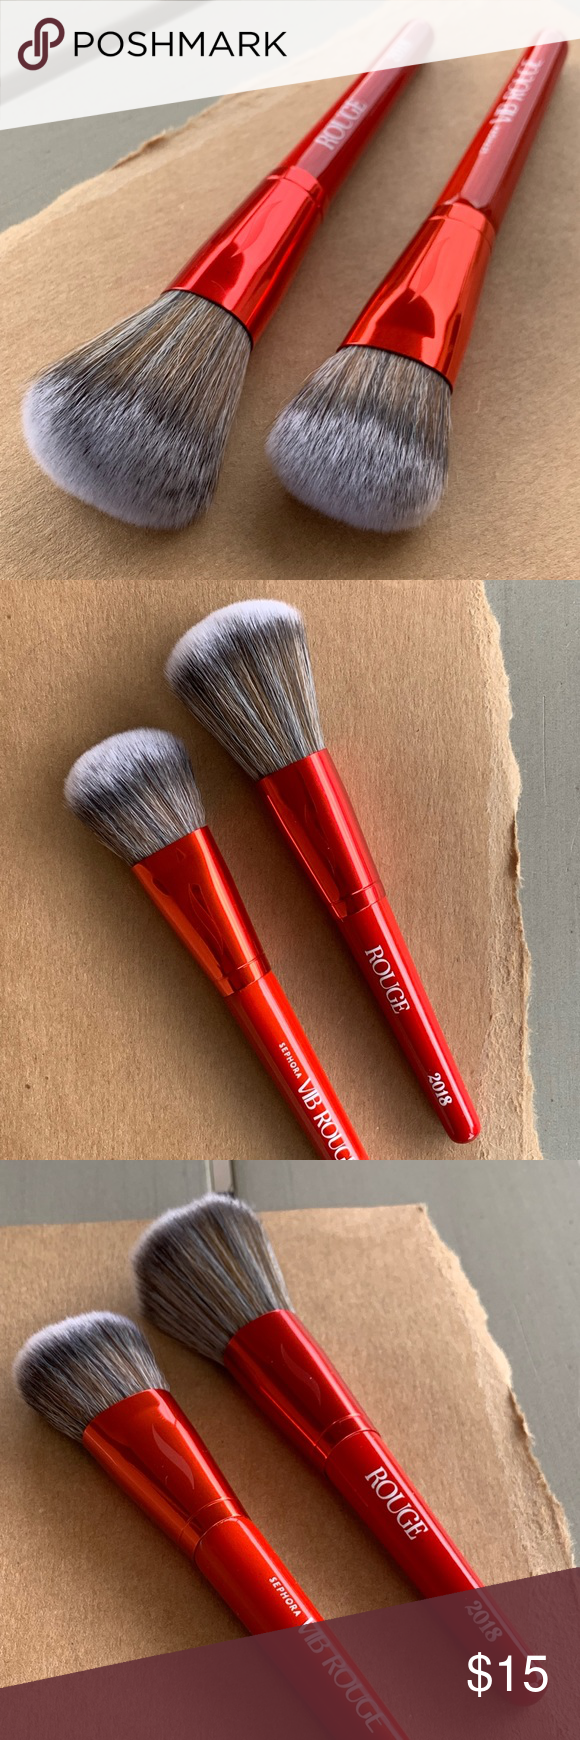 Set of 2 Sephora travel size brushes Travel size